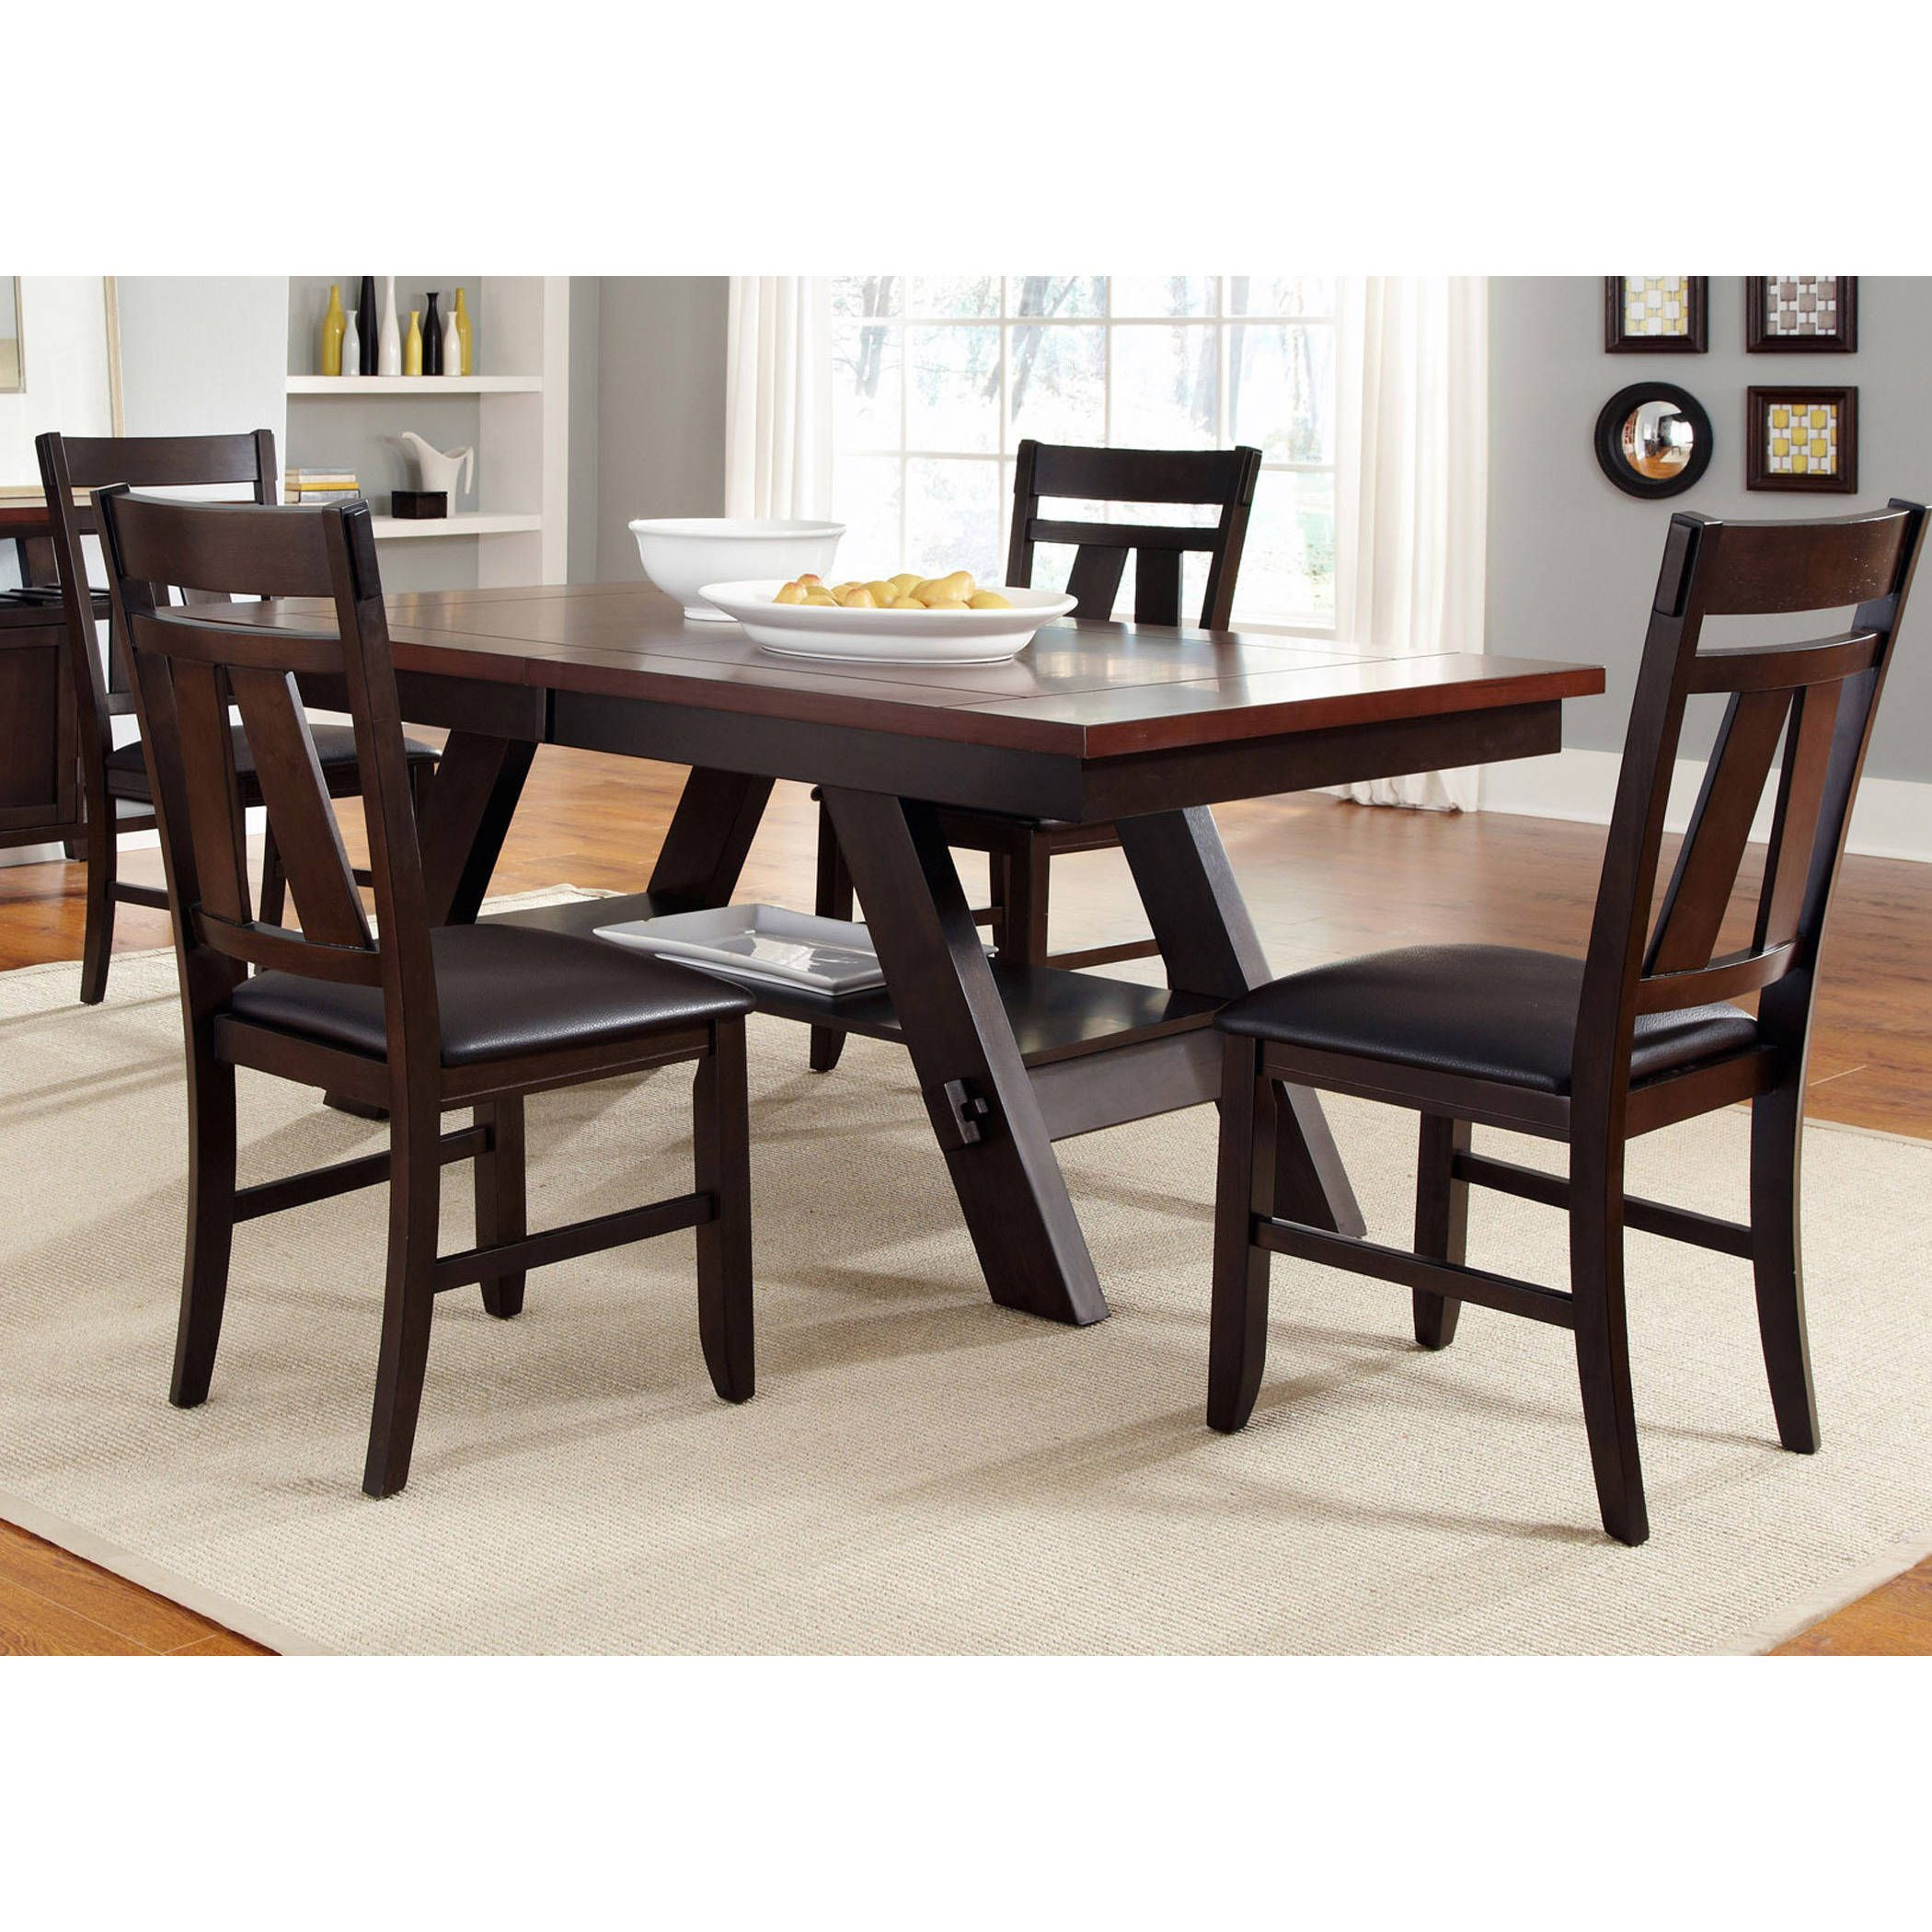 Liberty Expresso Twotone Transitional 5Piece Dinette Set Fascinating Two Toned Dining Room Sets 2018